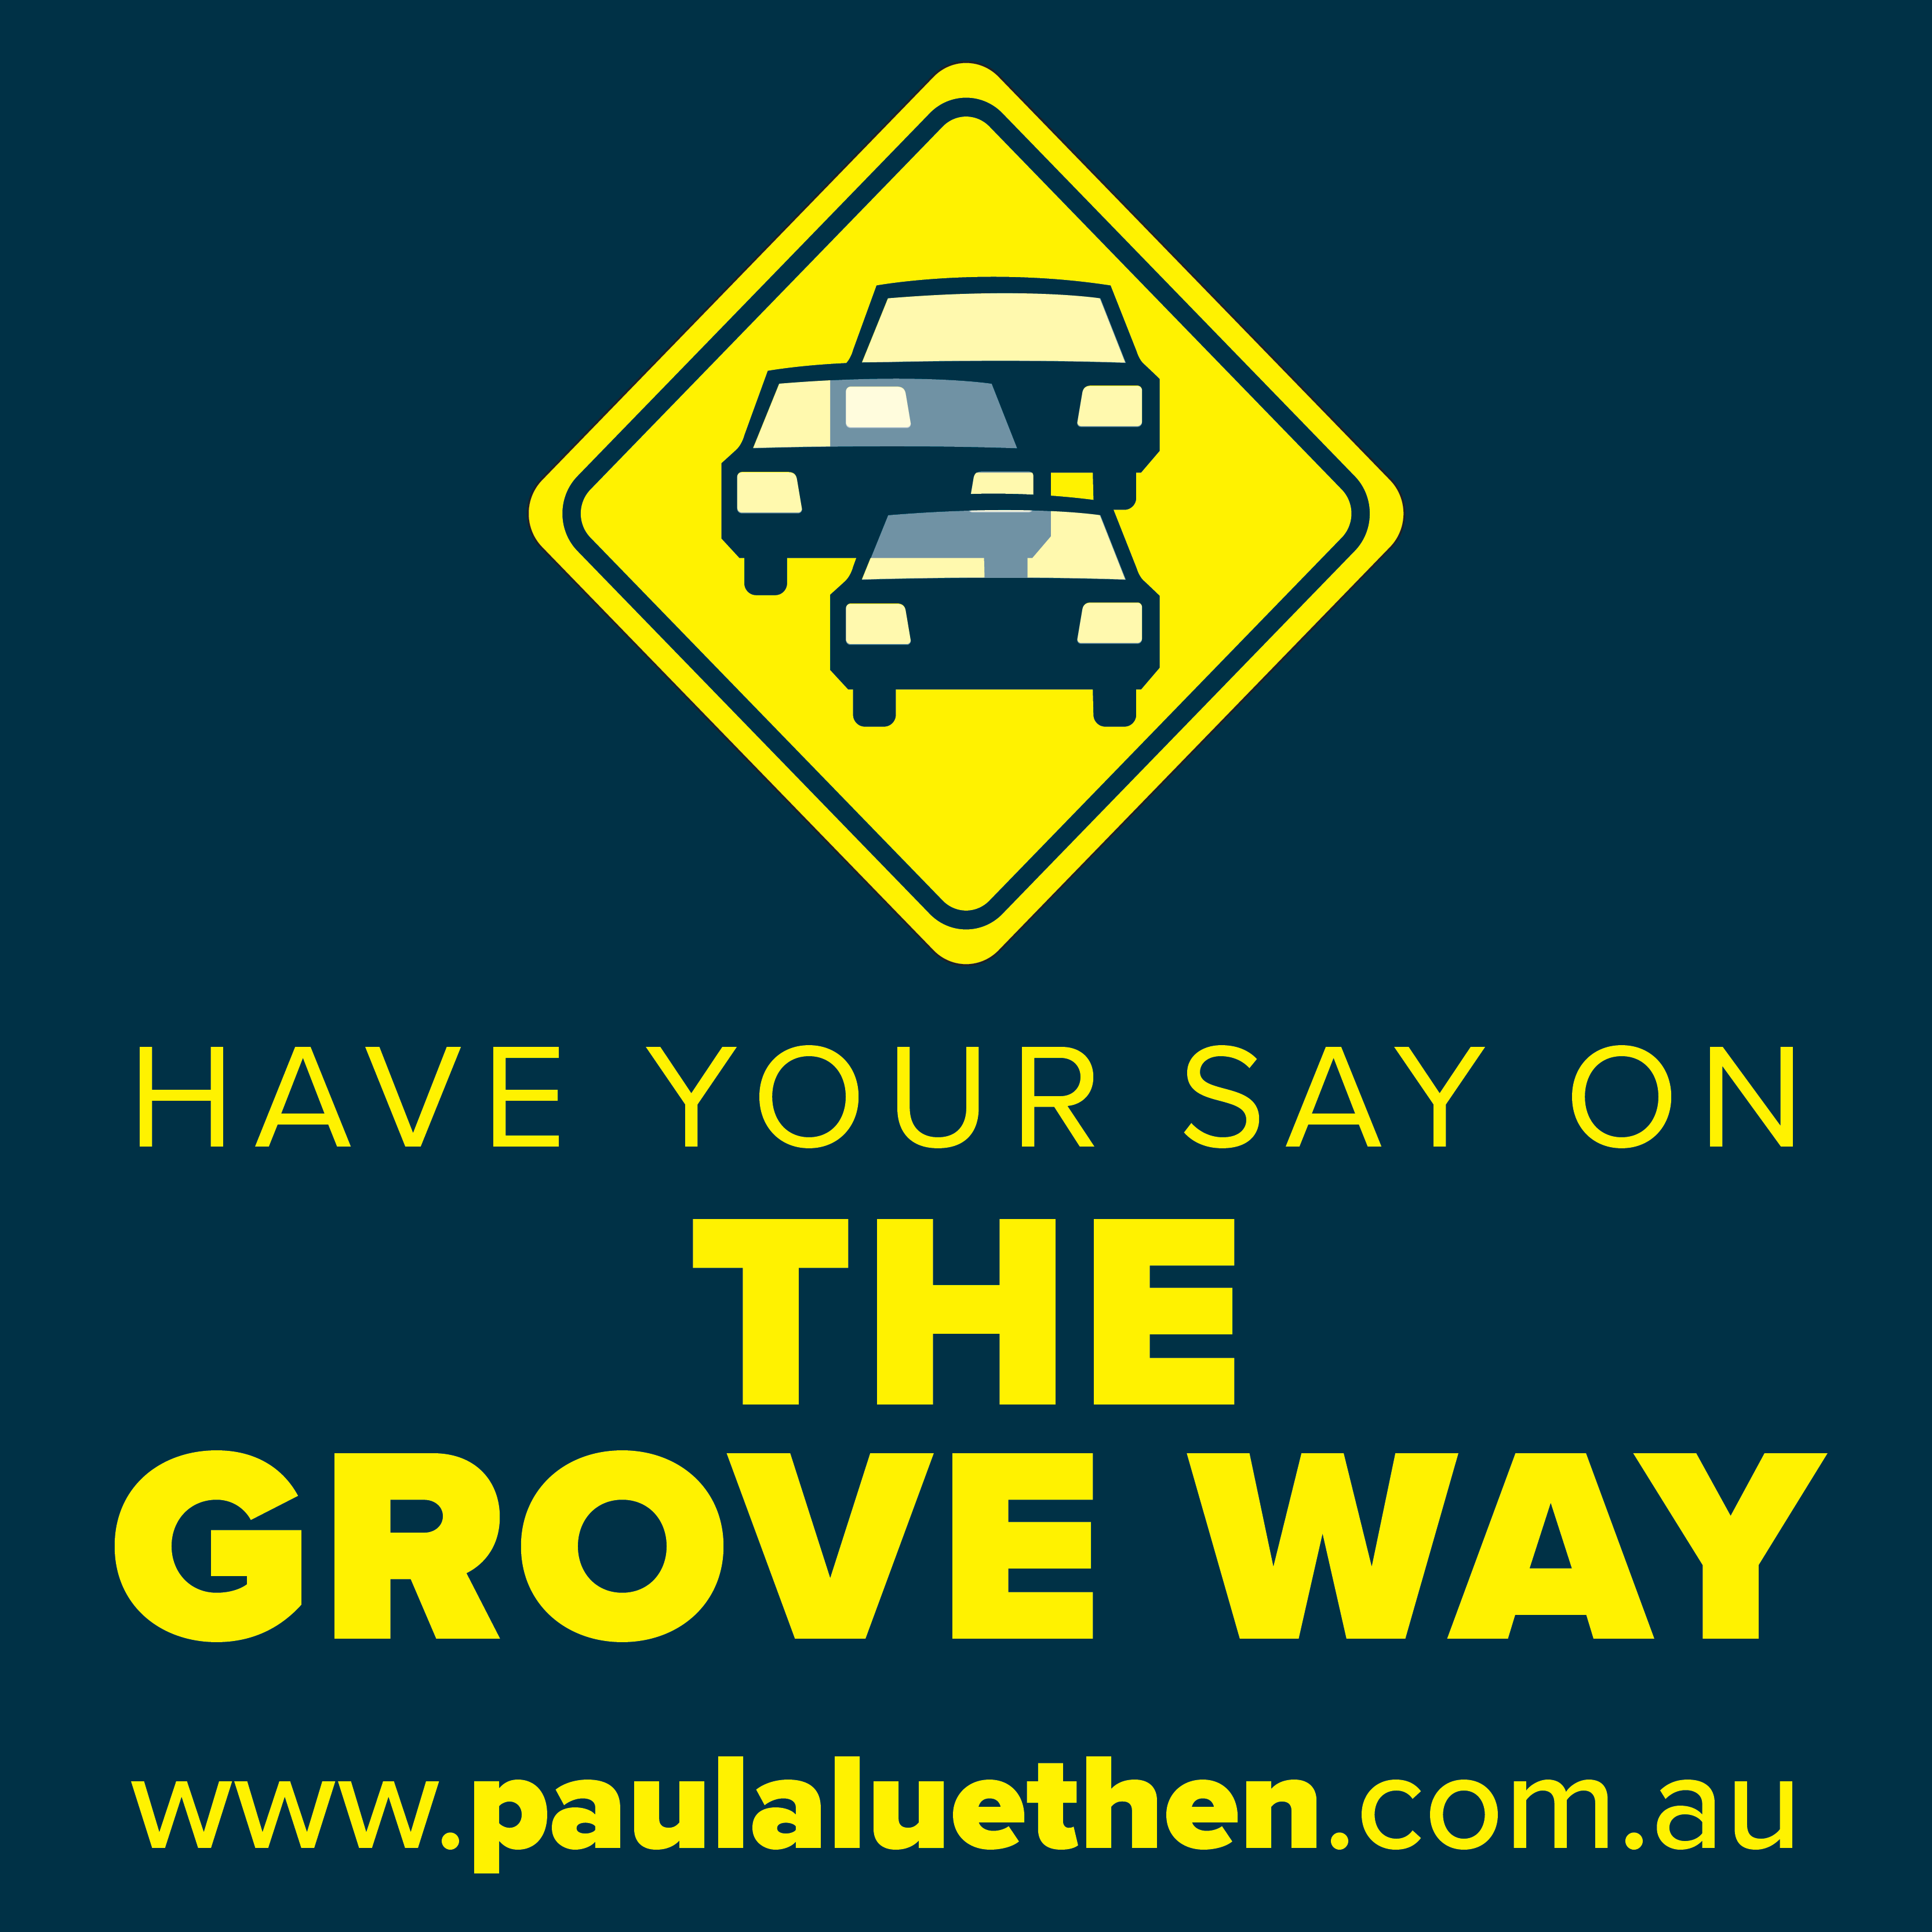 Have Your Say on The Grove Way